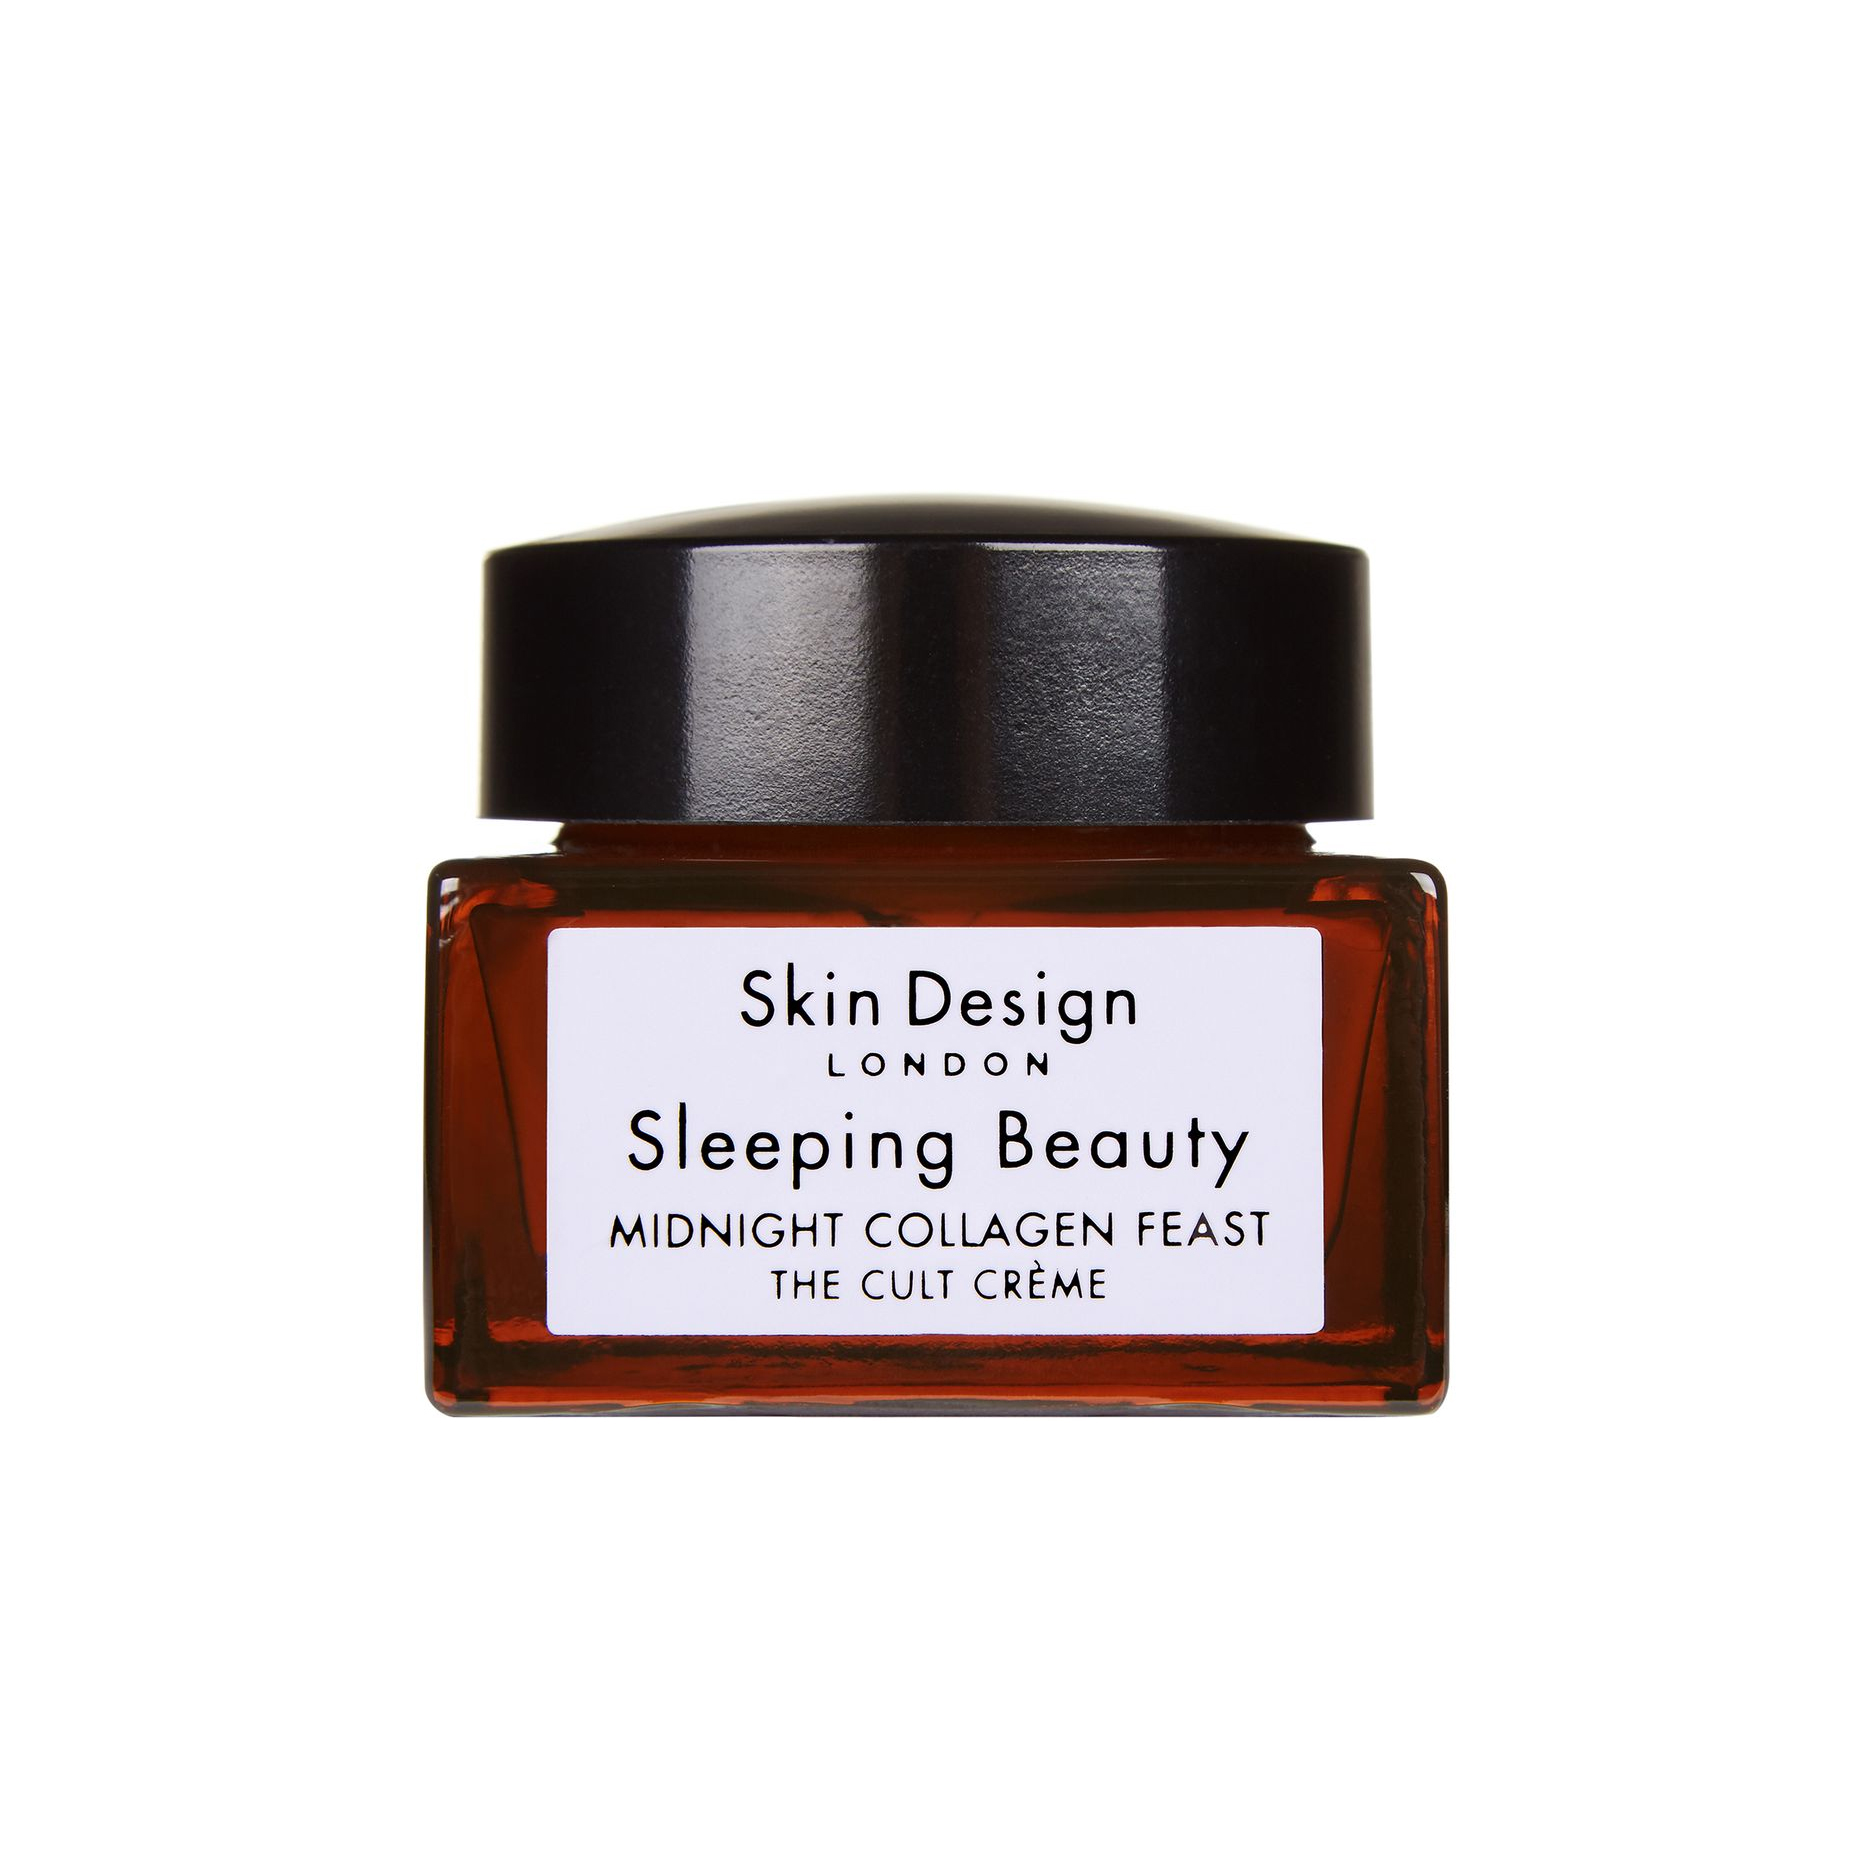 Sleeping Beauty - Midnight Collagen Feast